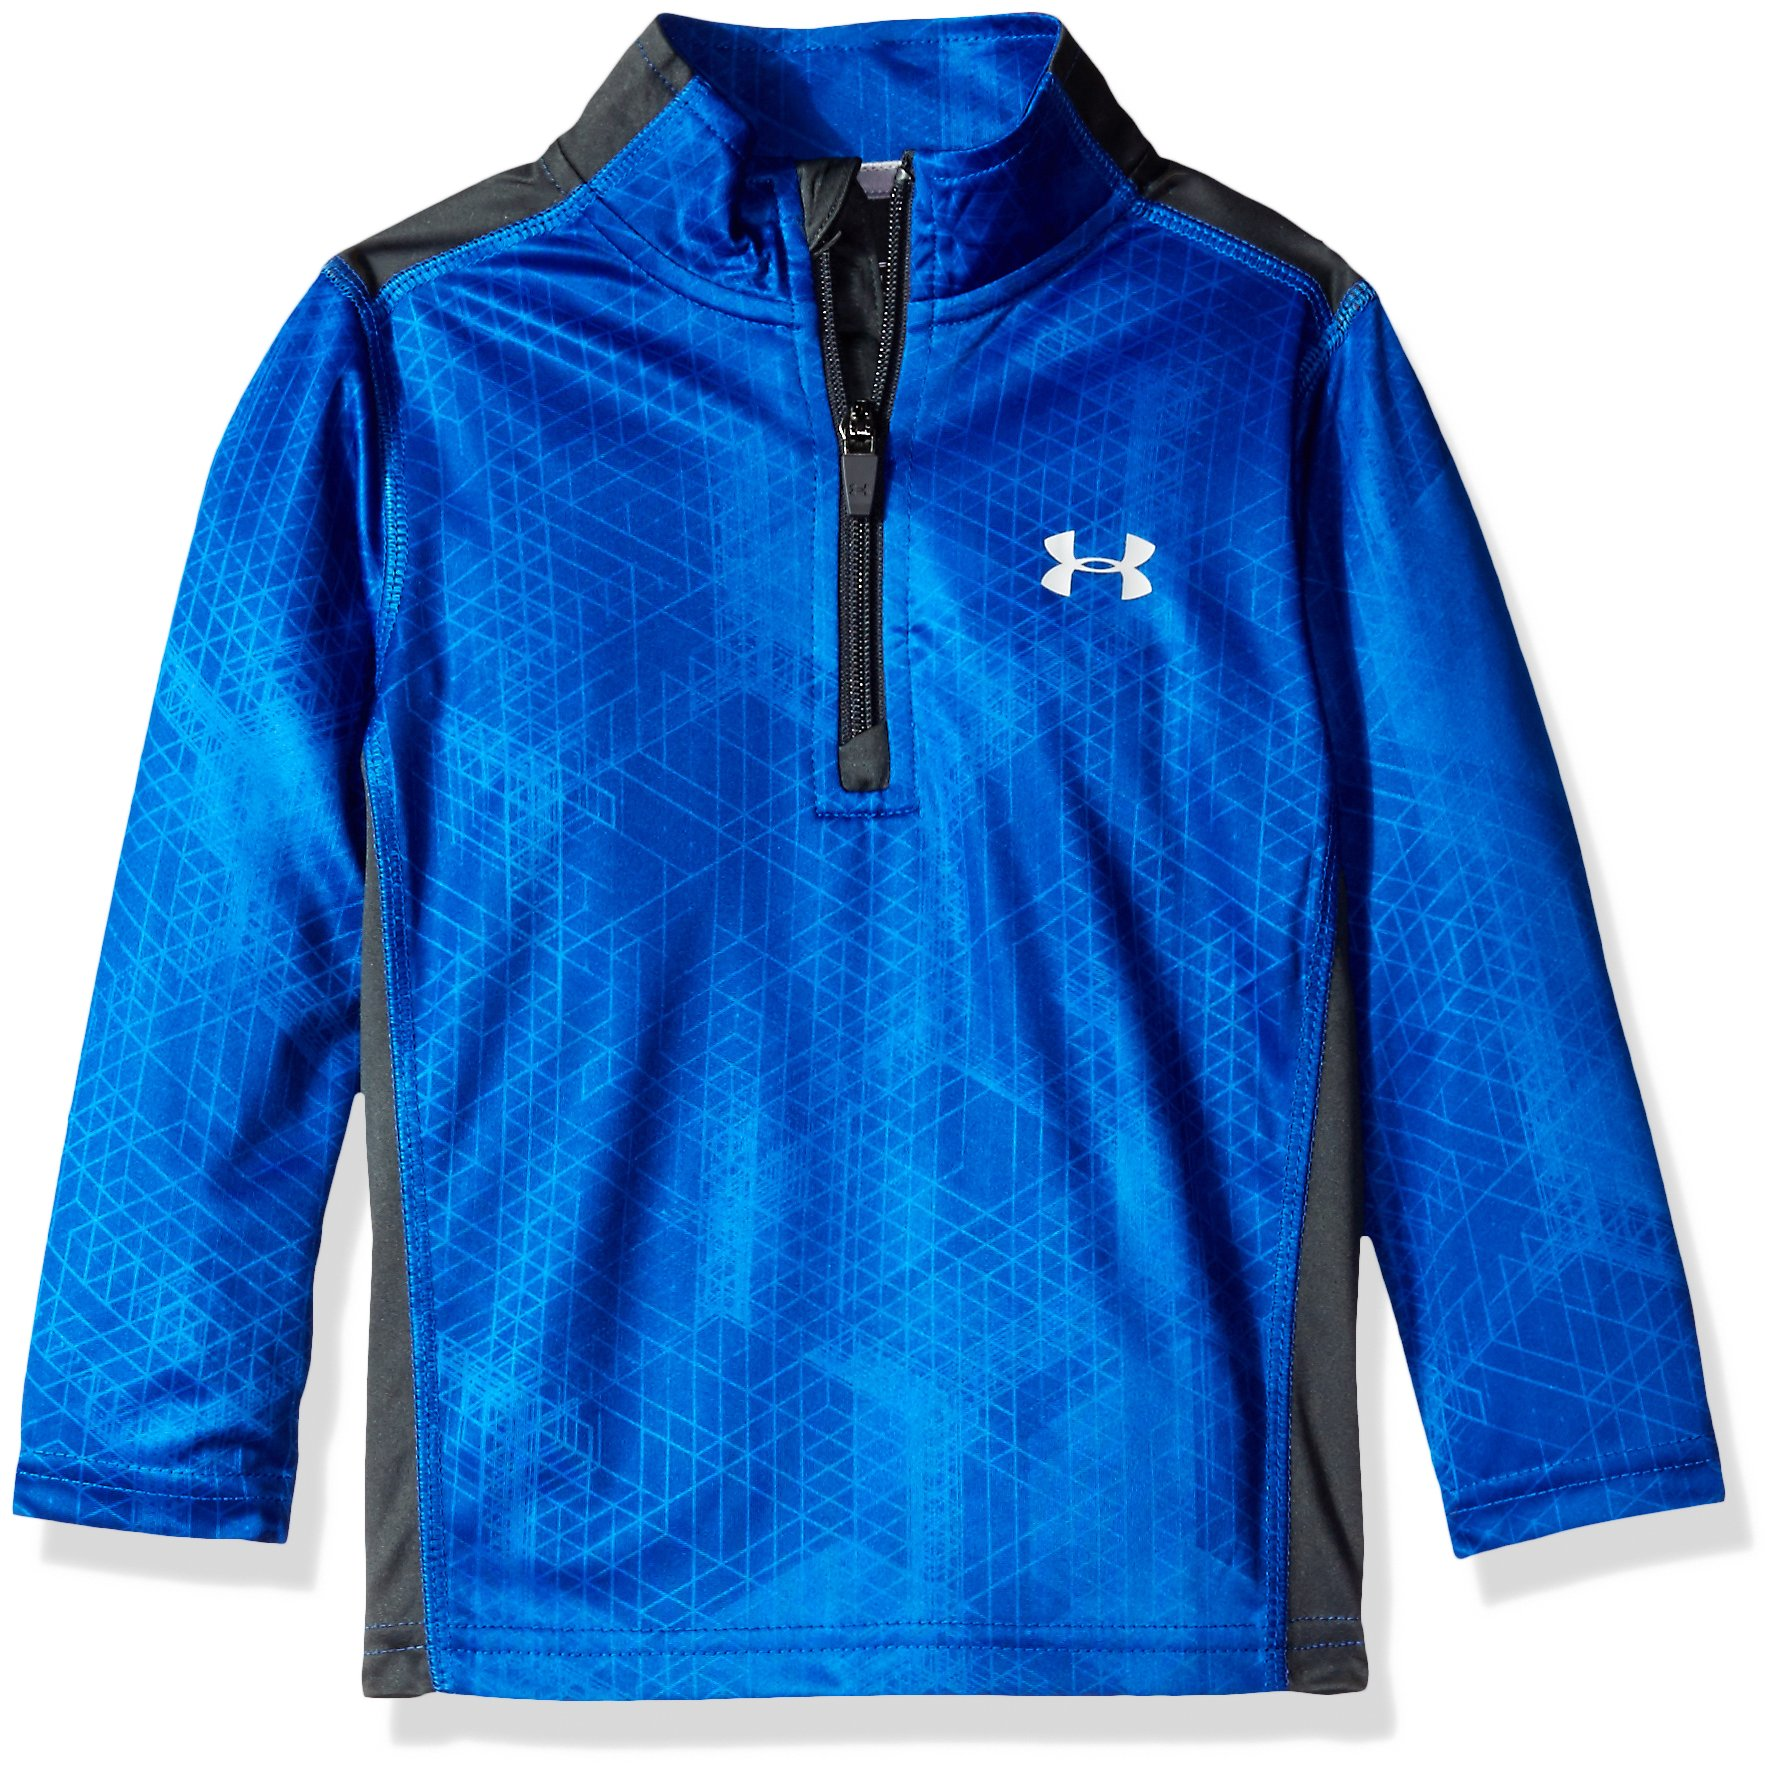 Under Armour Little Boys' 1/4 Zip Long Sleeve Top, Caspian Hexiscope, 5 by Under Armour